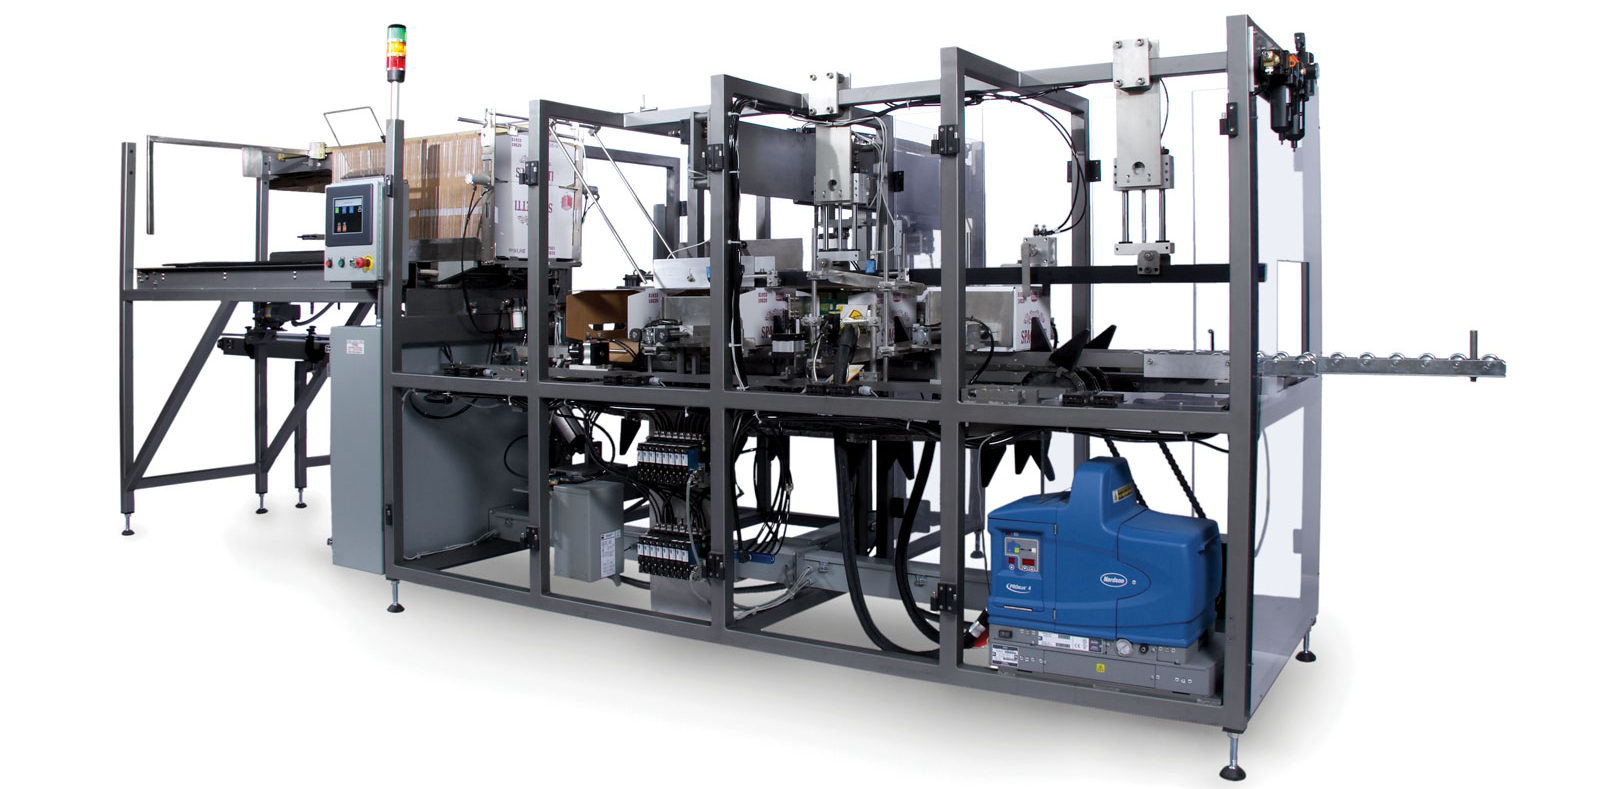 TPMI-1800-GS-automatic-casepacker-for-cartons.jpg